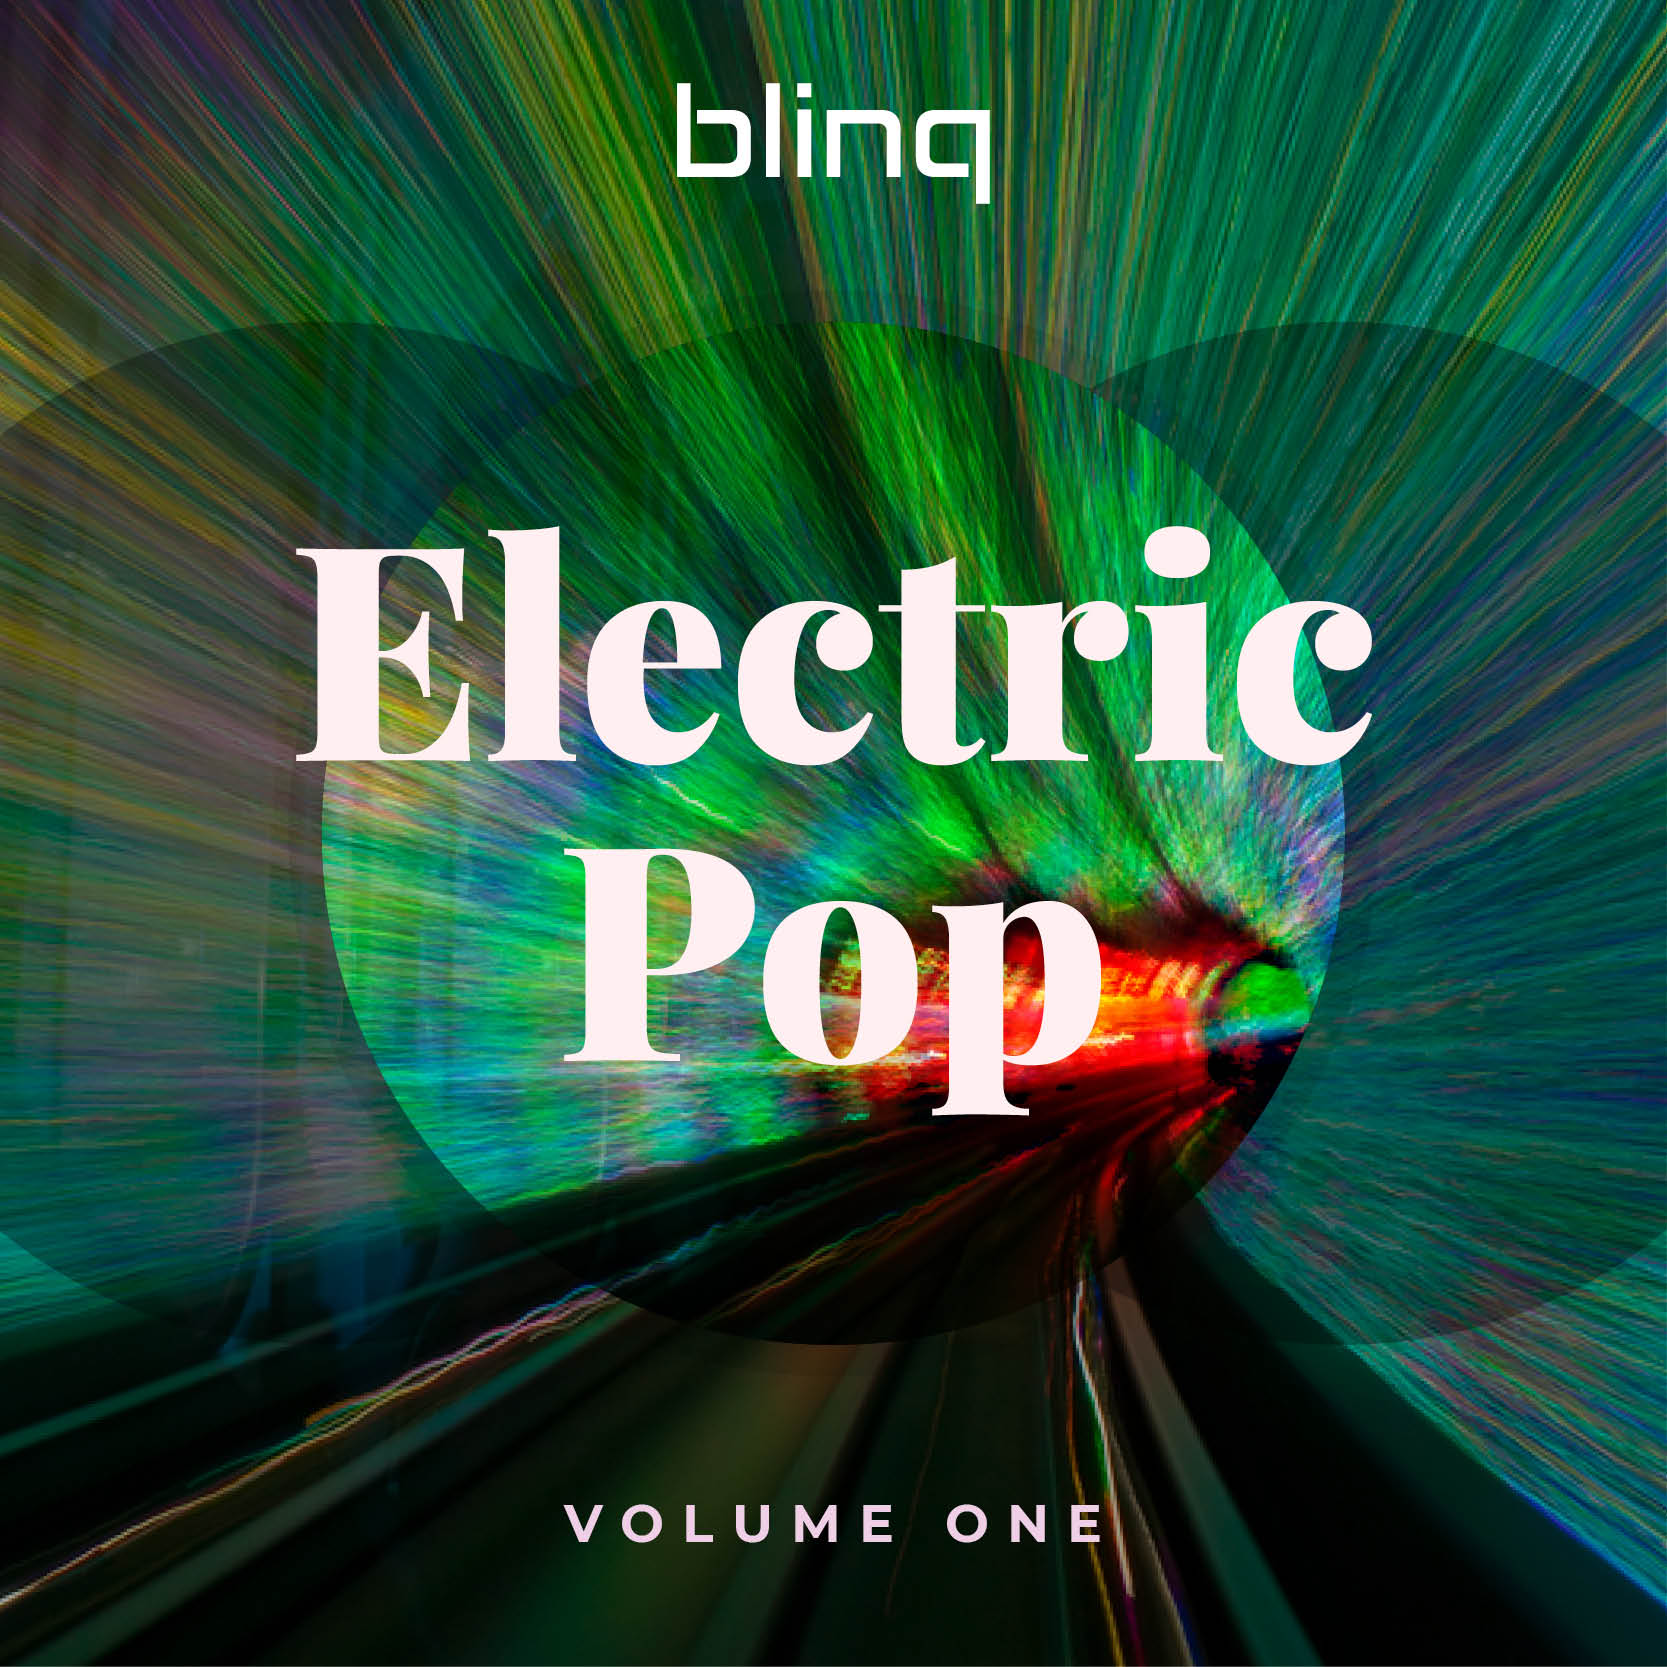 Electric Pop